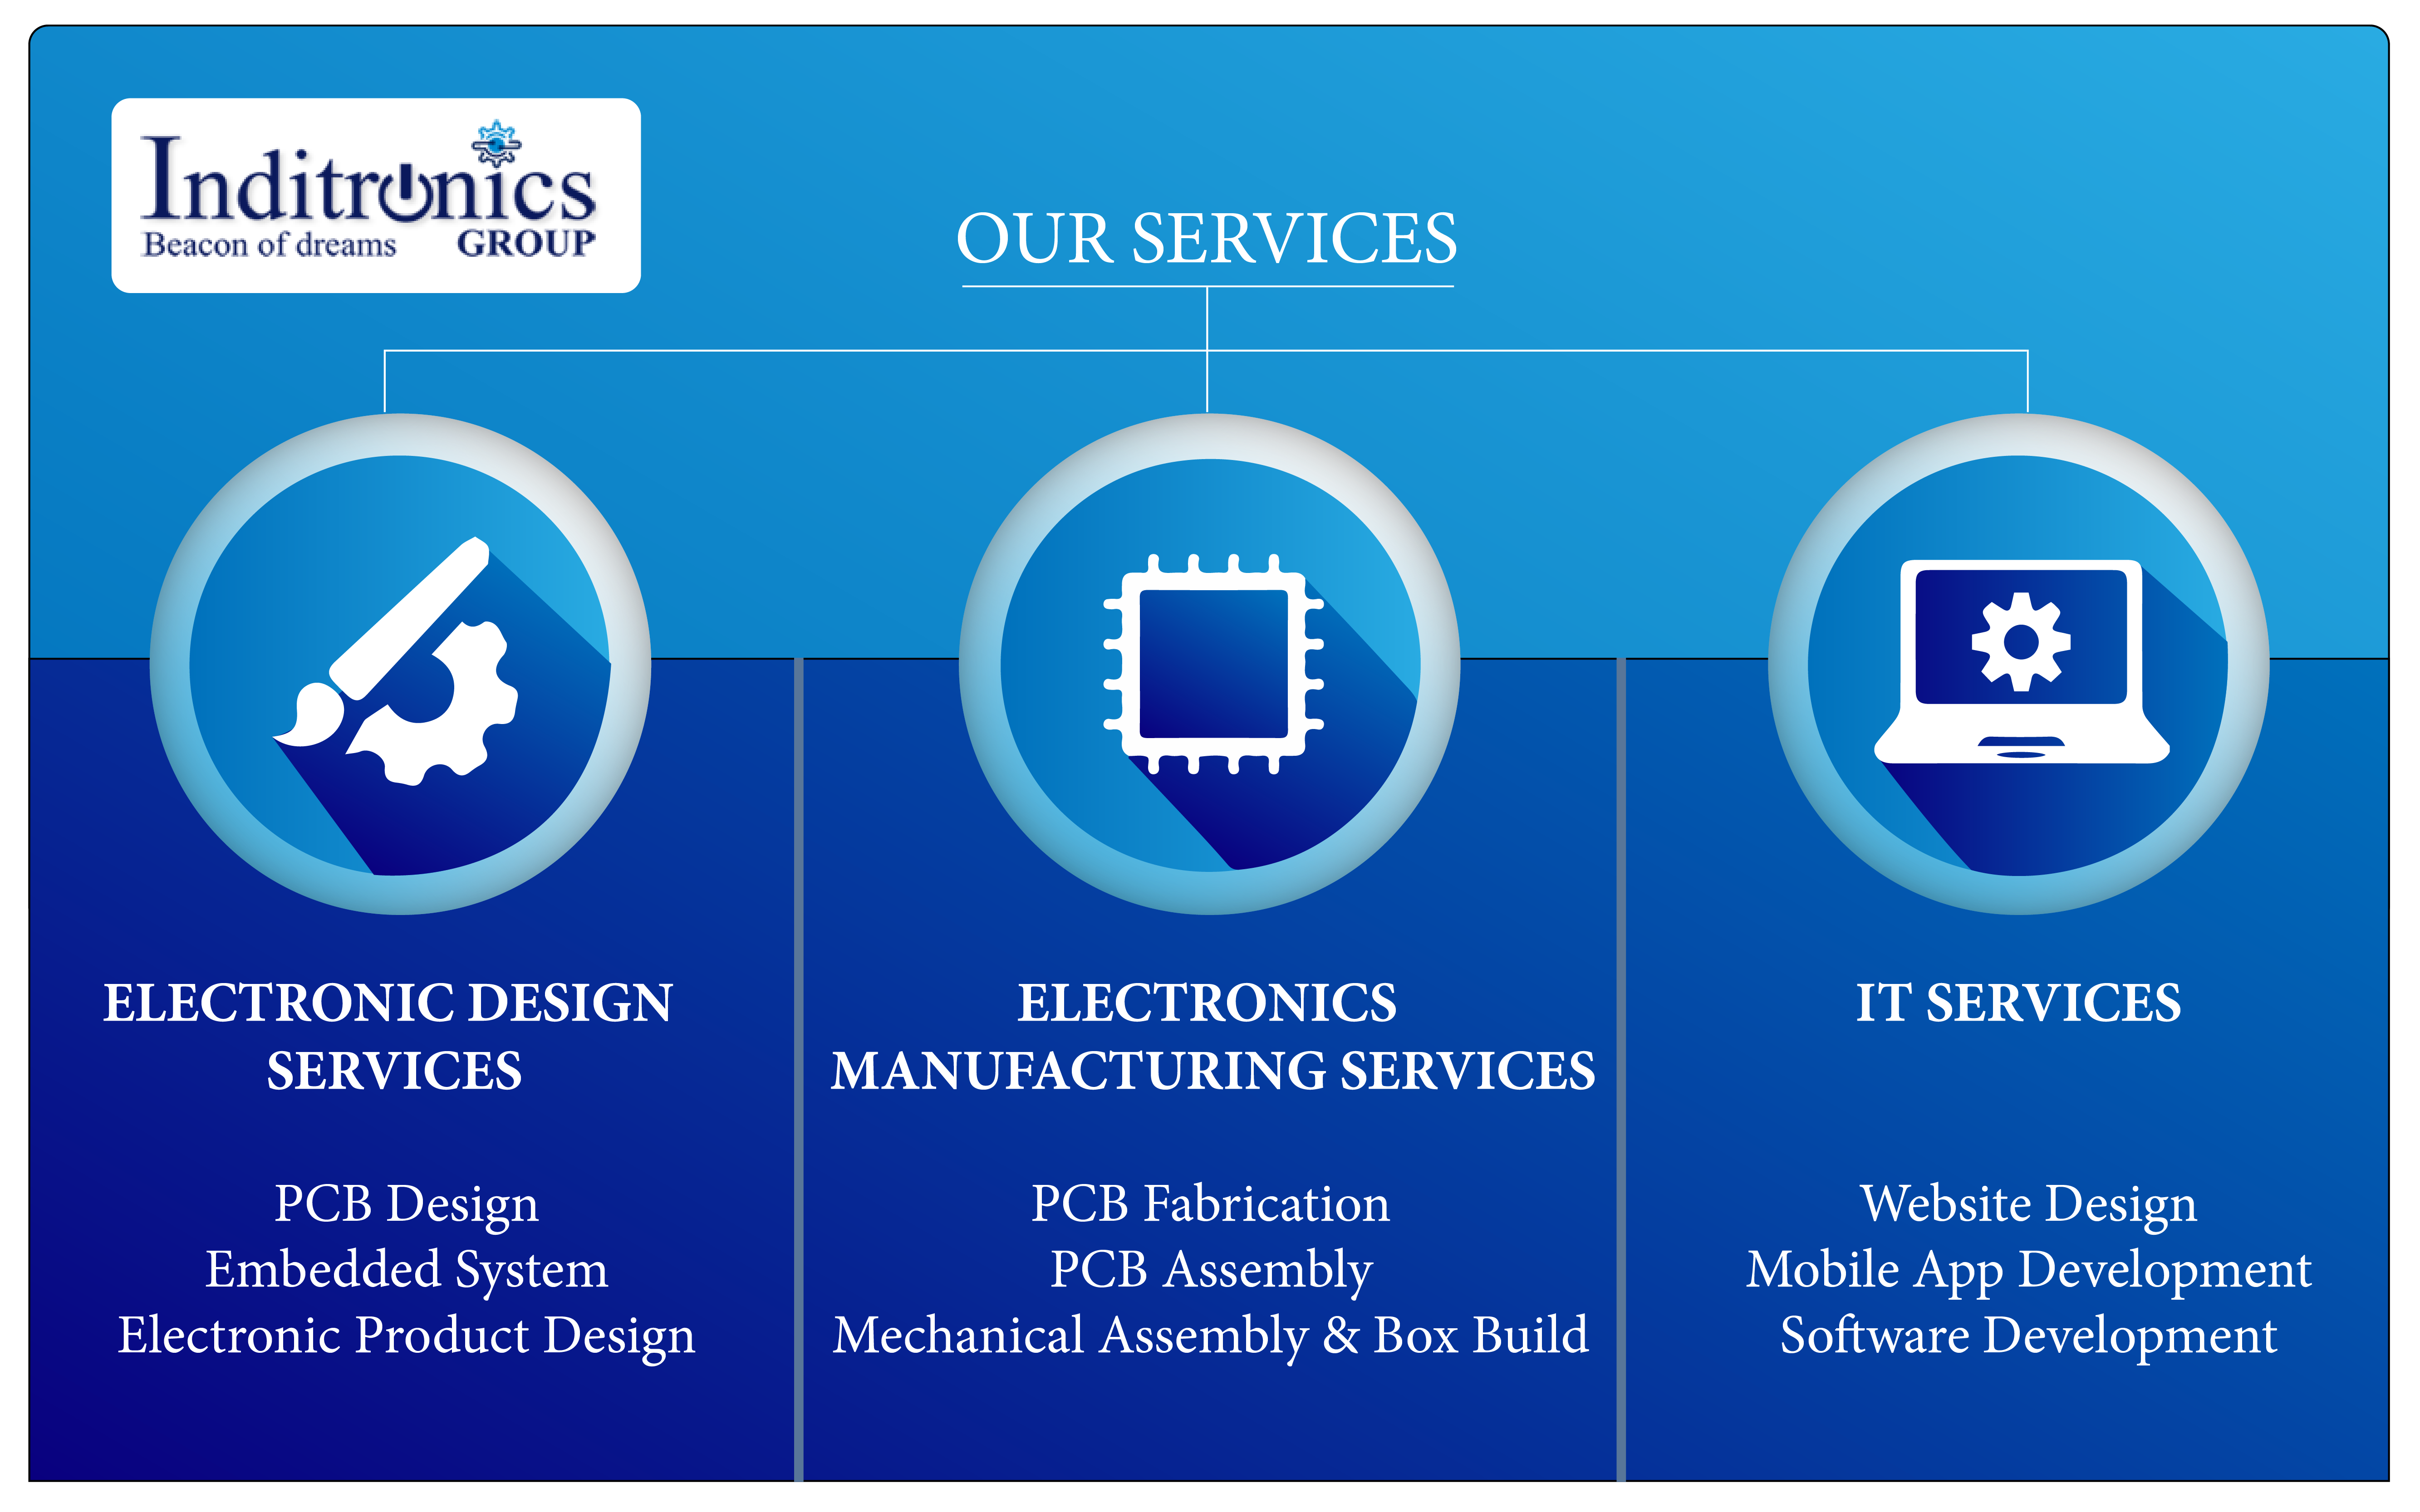 Pin On Inditronics Services